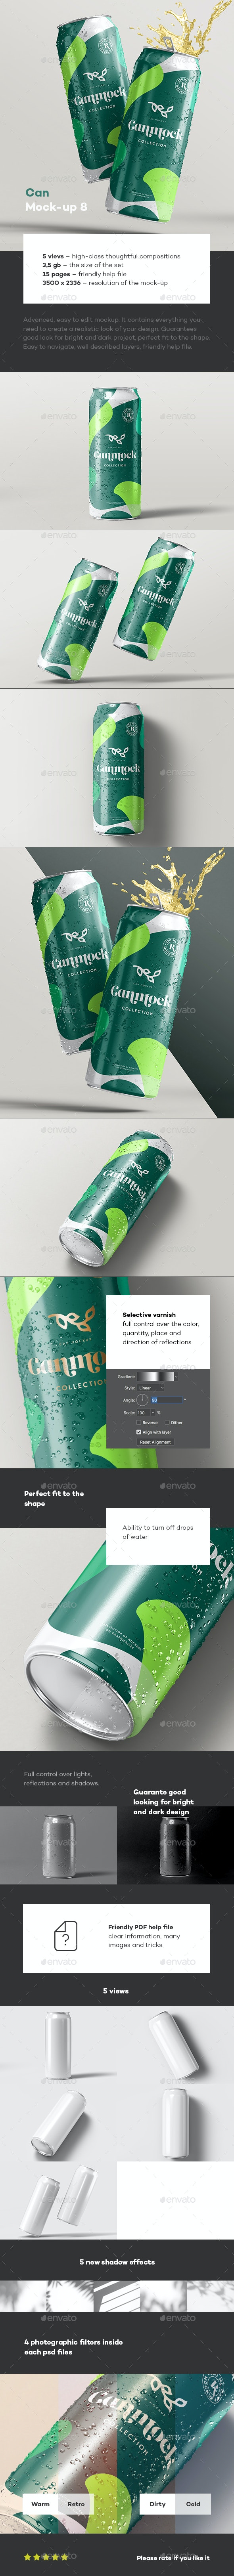 Can Mock-up 8 - Food and Drink Packaging